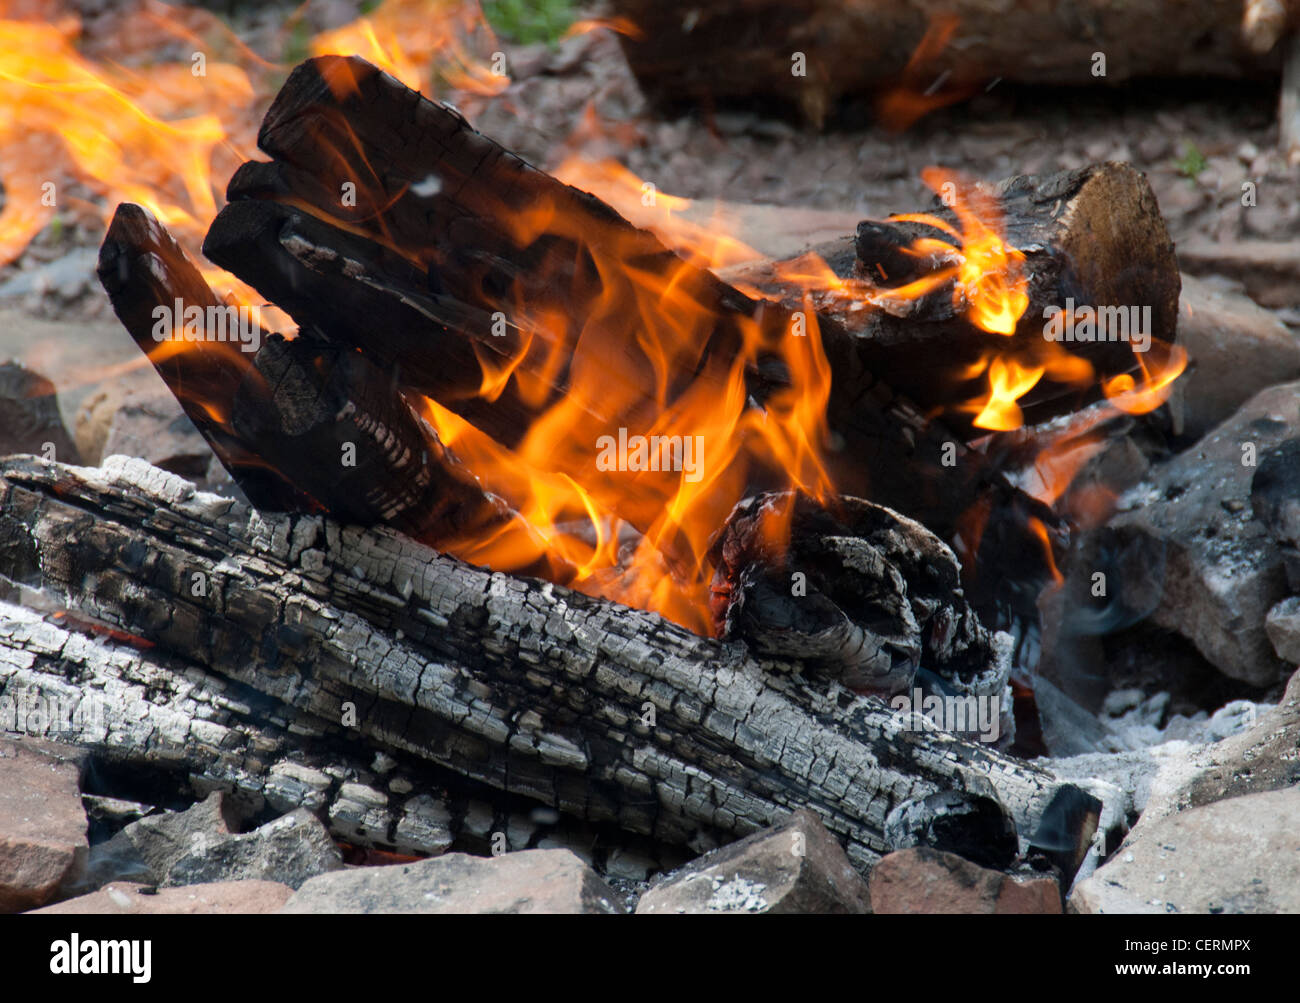 Campfire of logs burning in an open fire-pit - Stock Image